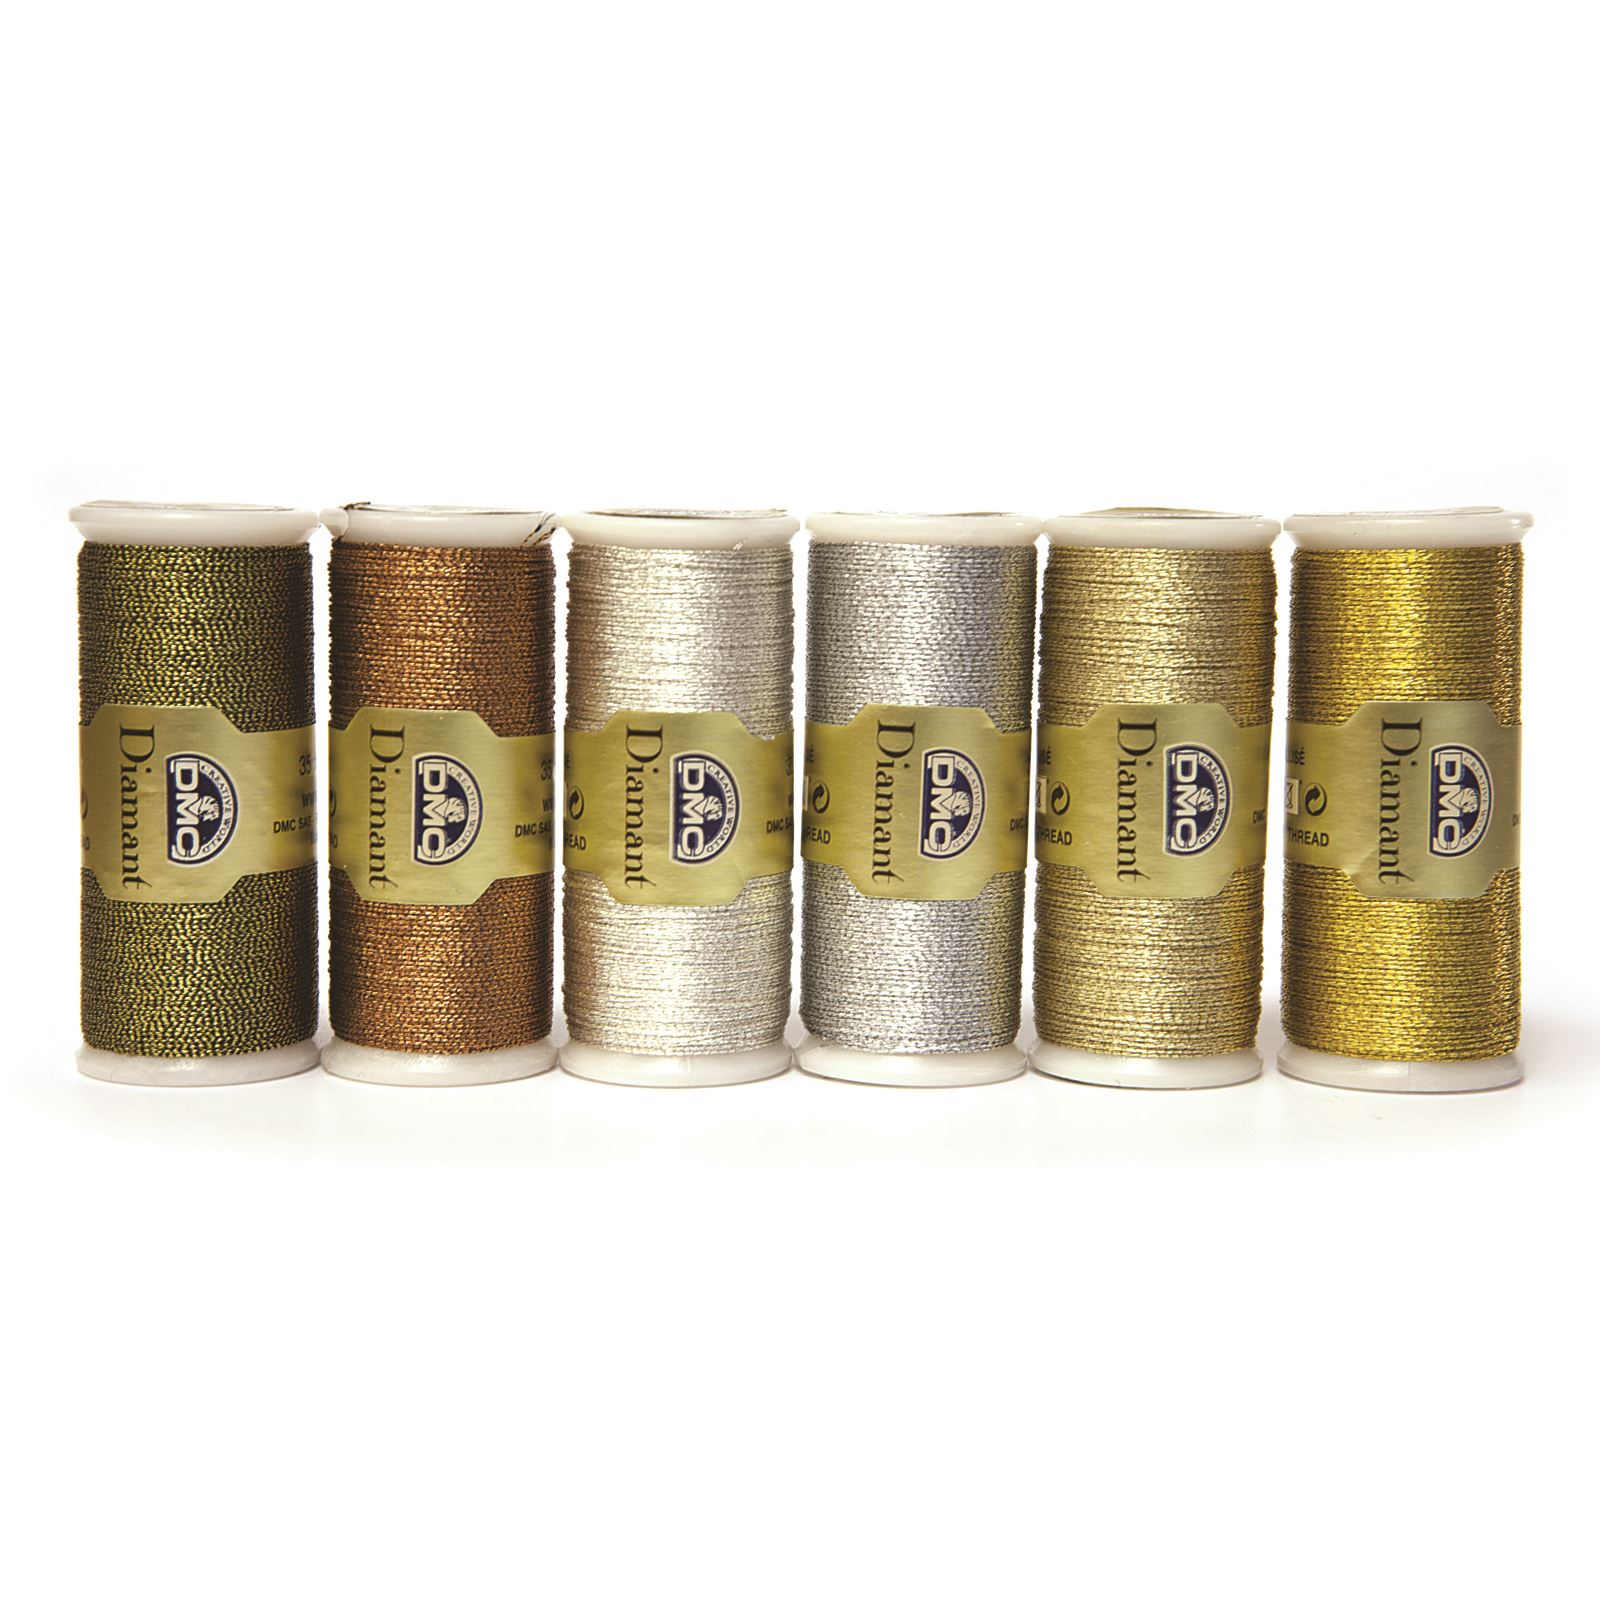 DMC-Diamant-Metallic-Embroidery-Thread-35m-Spool-Cross-Stitch thumbnail 21